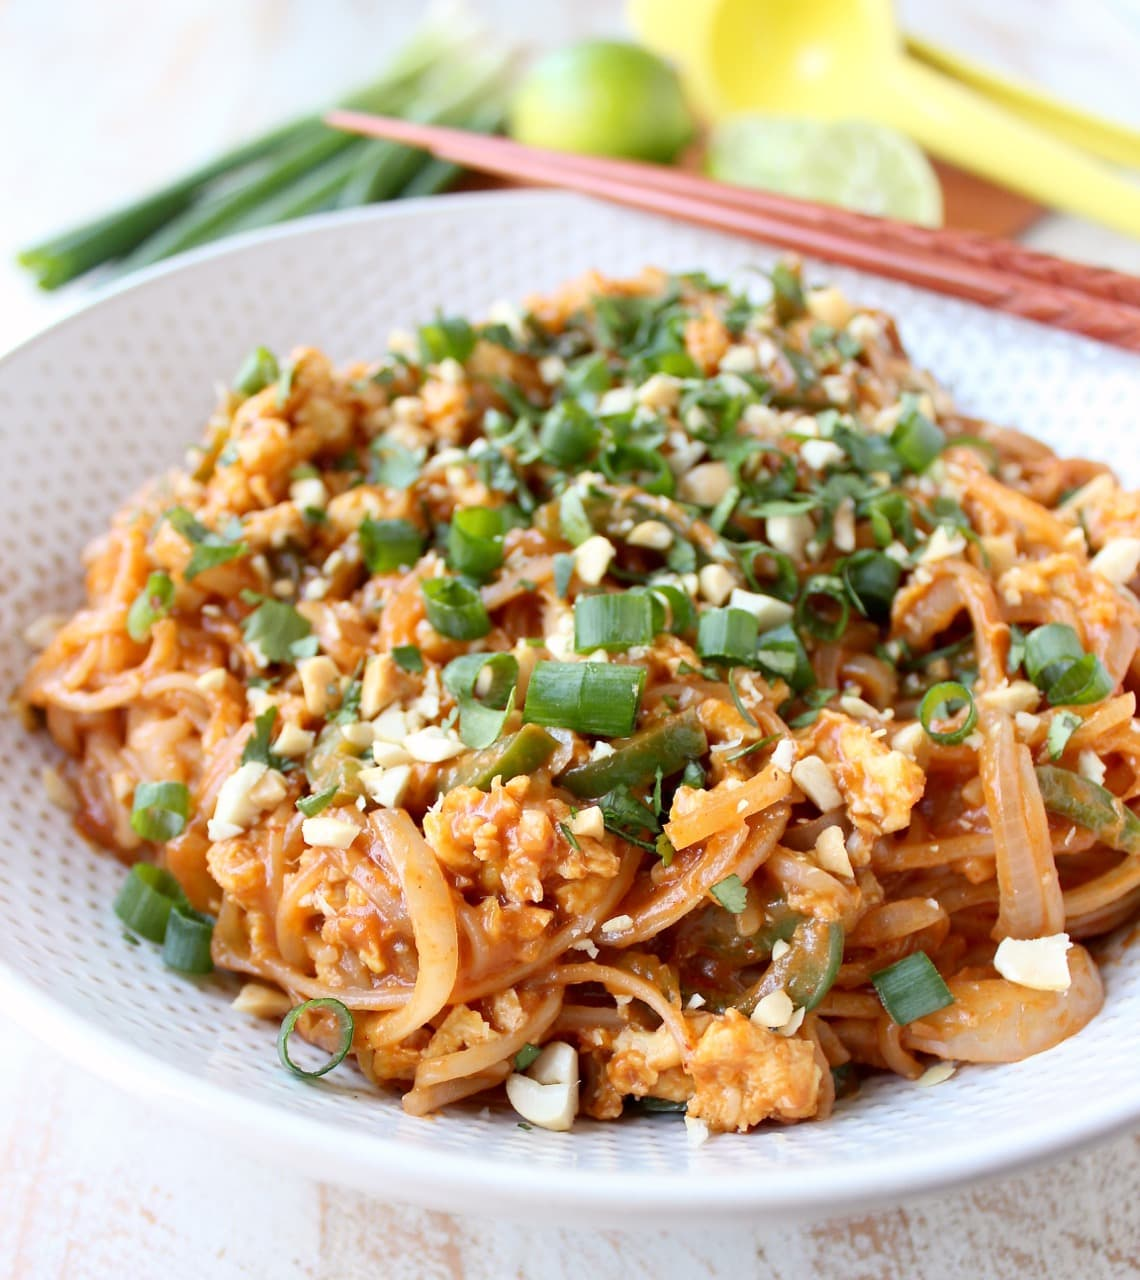 Pad Thai Recipe in bowl with eggs, green onions and peanuts